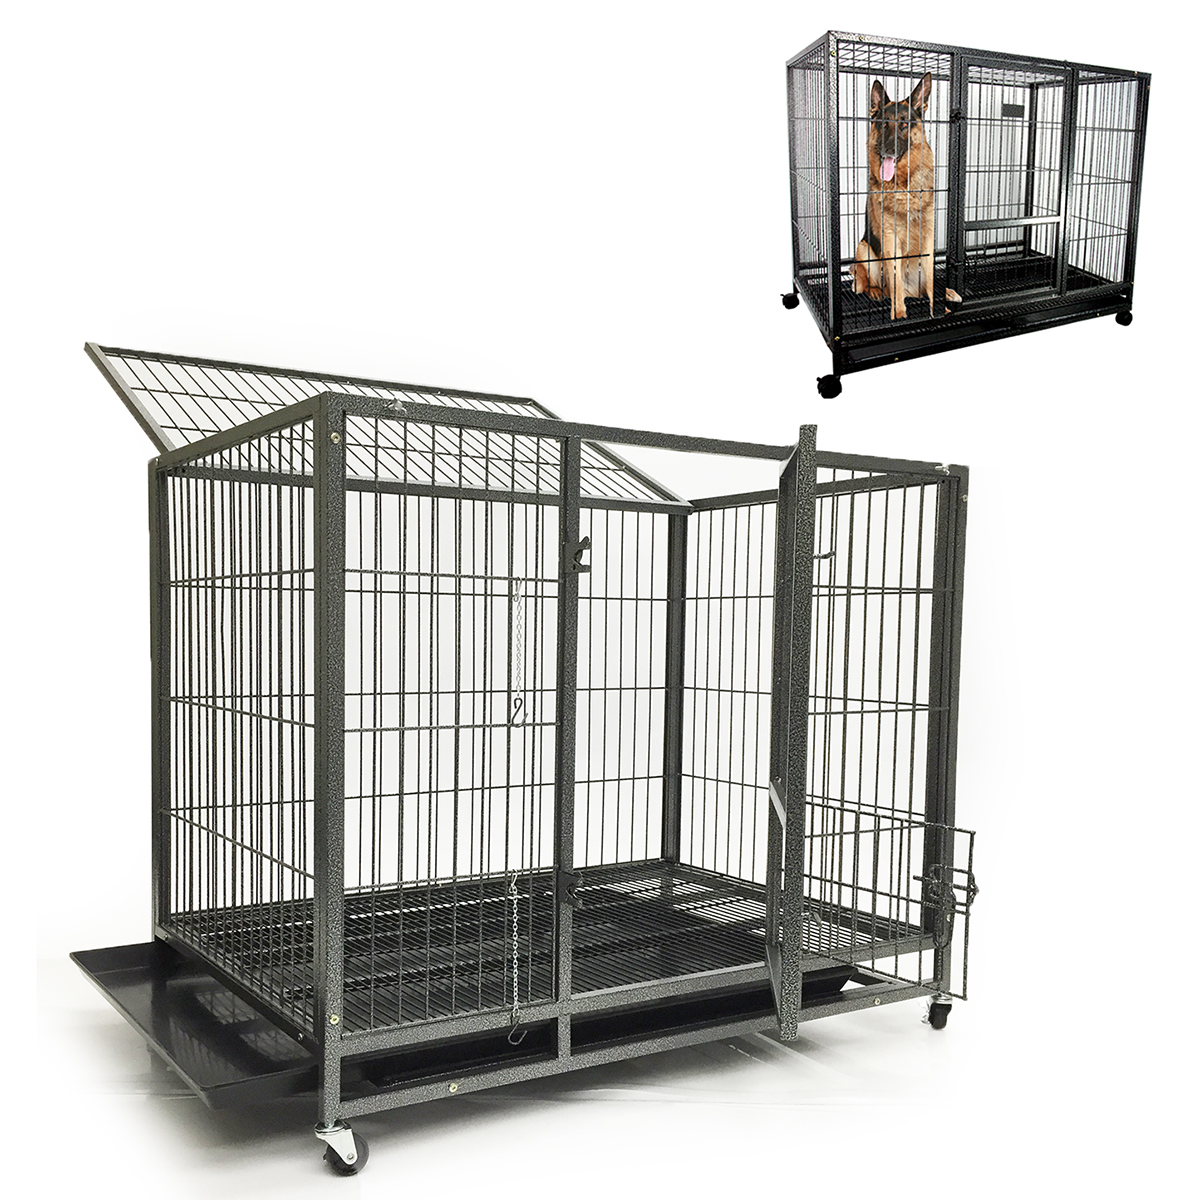 Portable Dog Run : Quot large dog kennel w wheels portable pet puppy carrier